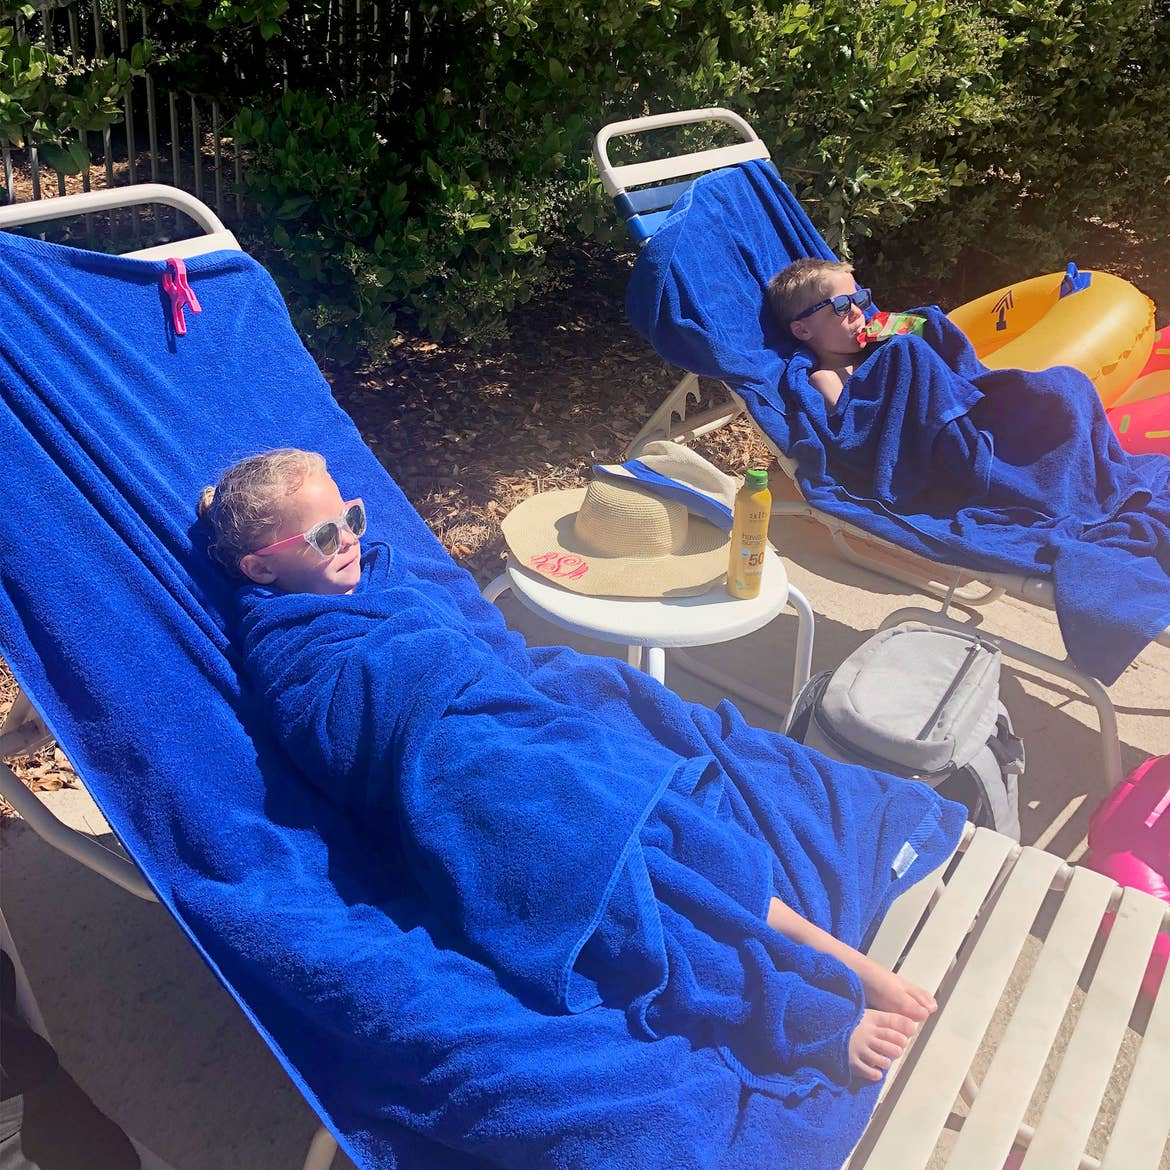 Featured Contributor, Brianna Steele's children sit wrapped in blue towels after a dip in the pool.